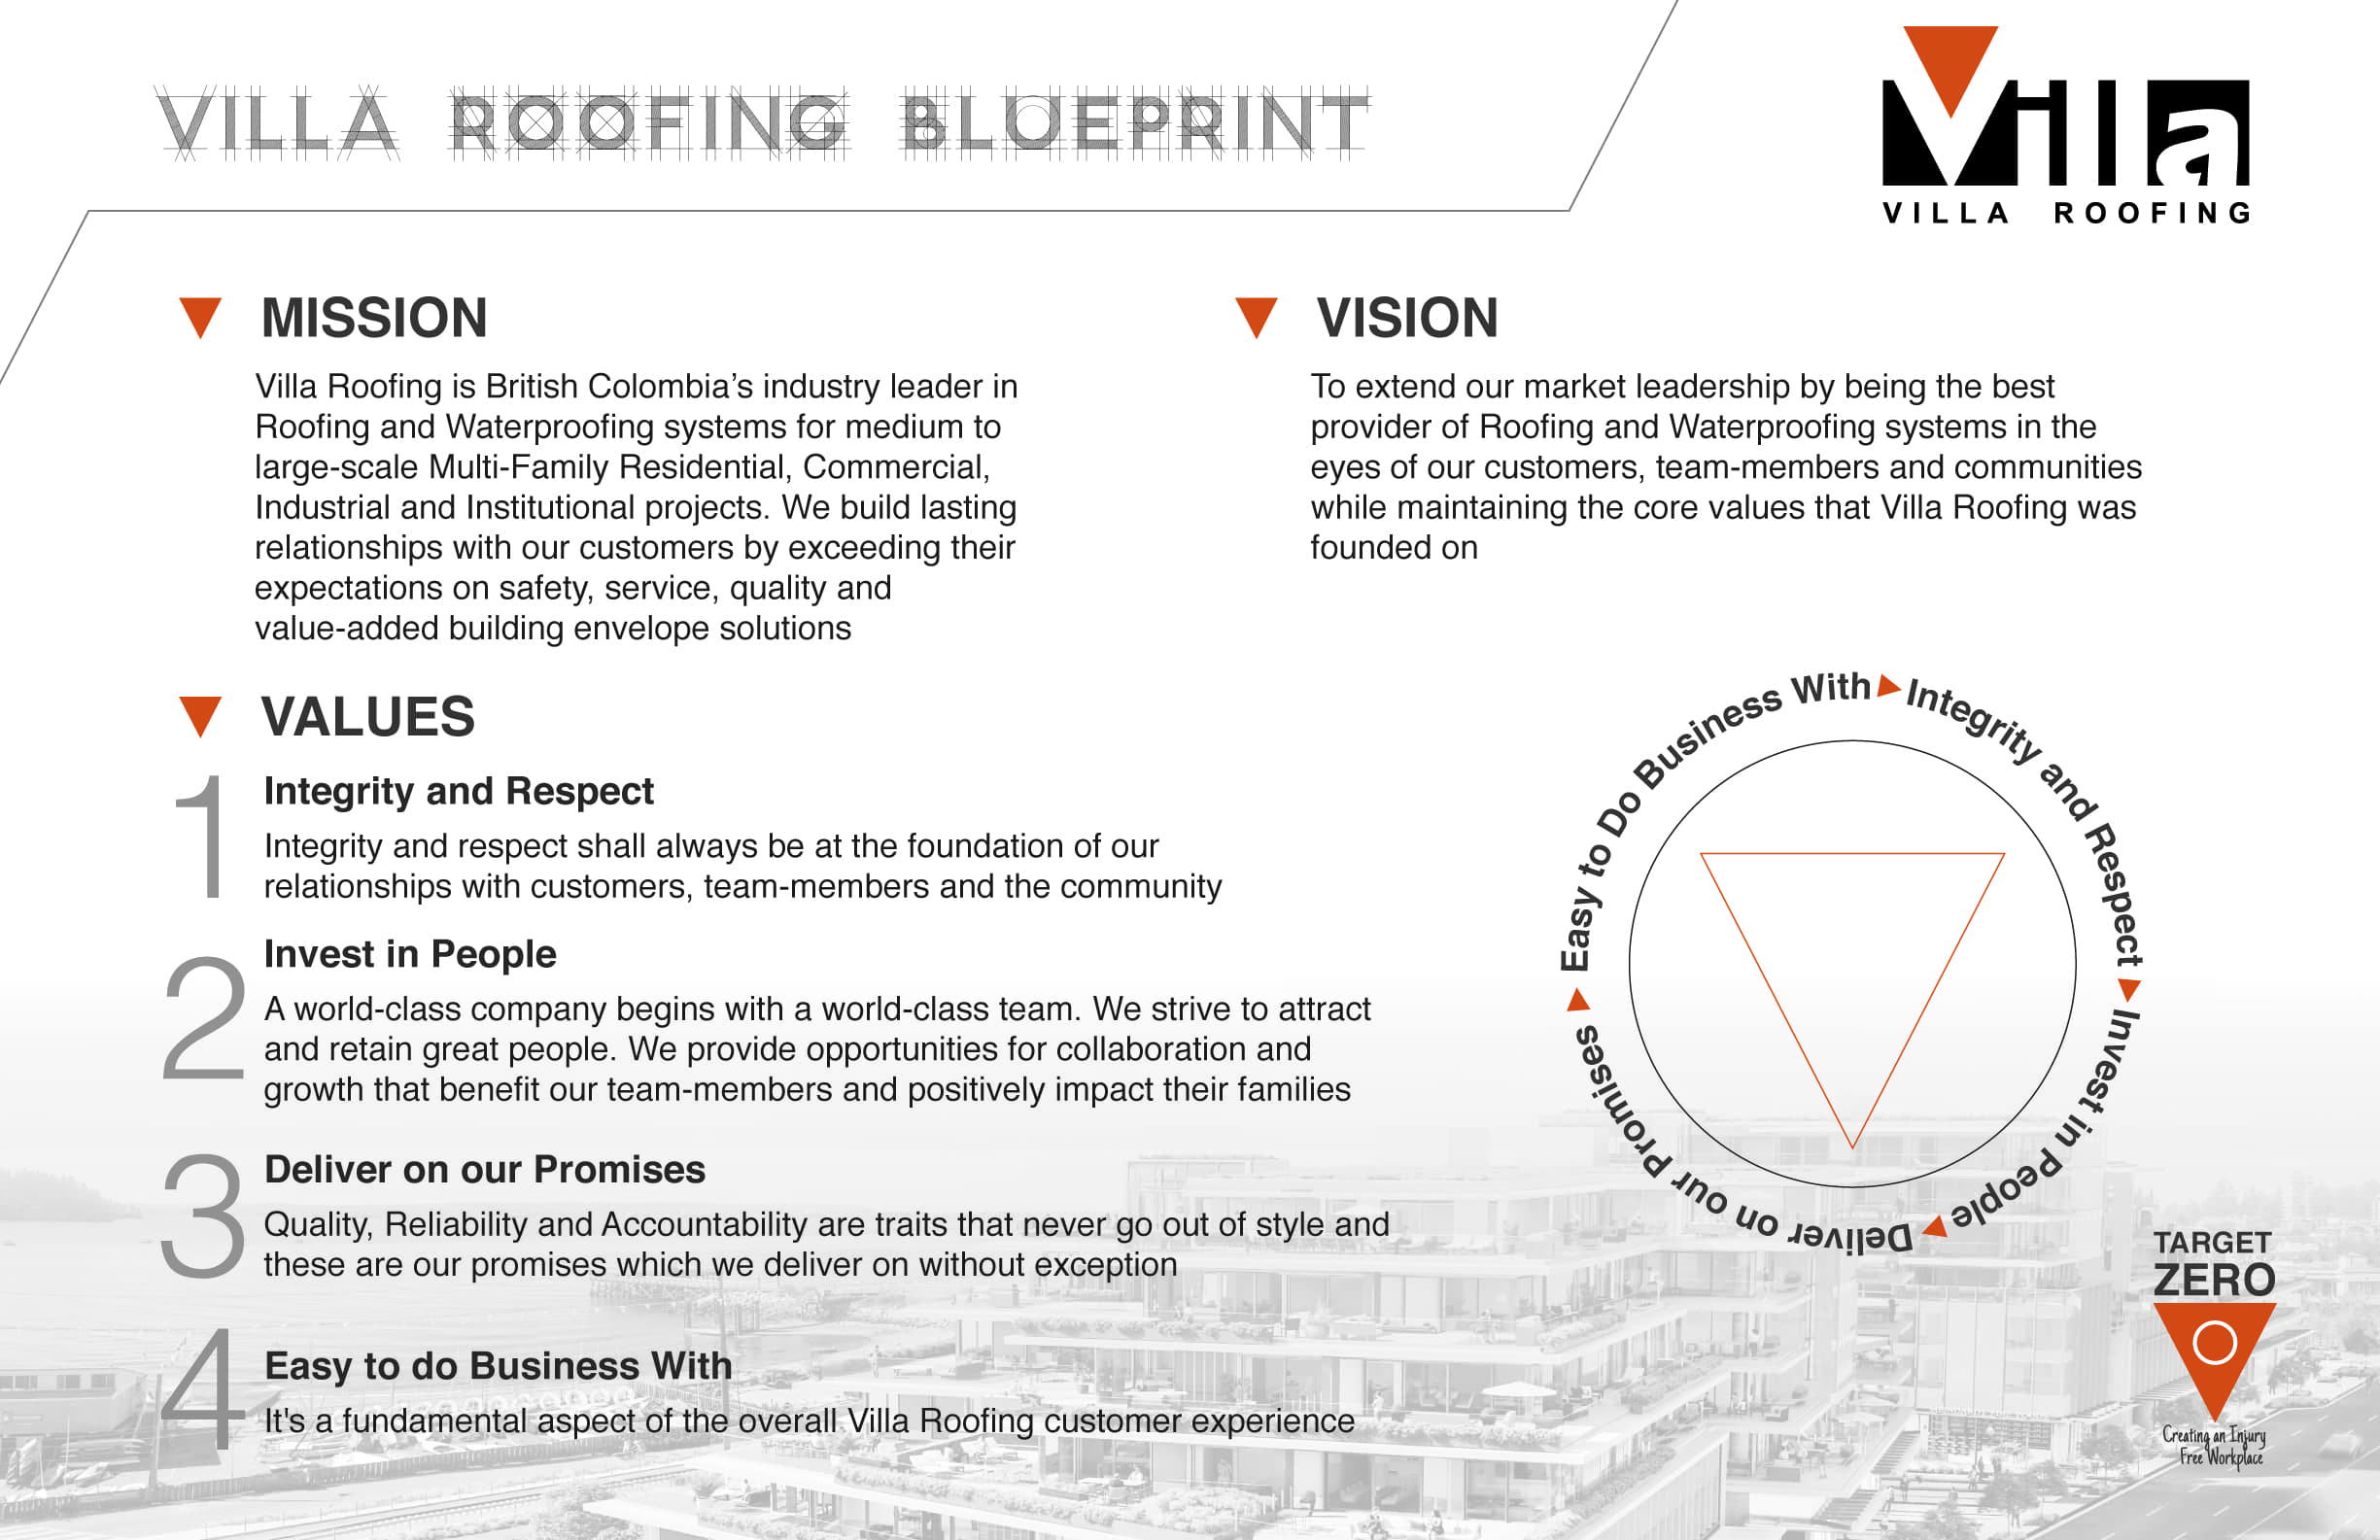 About us villa roofing bcs industry leader in roofing and villa roofing is committed to creating a culture defined by our values and a passion for building lasting relationships with our customers by exceeding malvernweather Choice Image